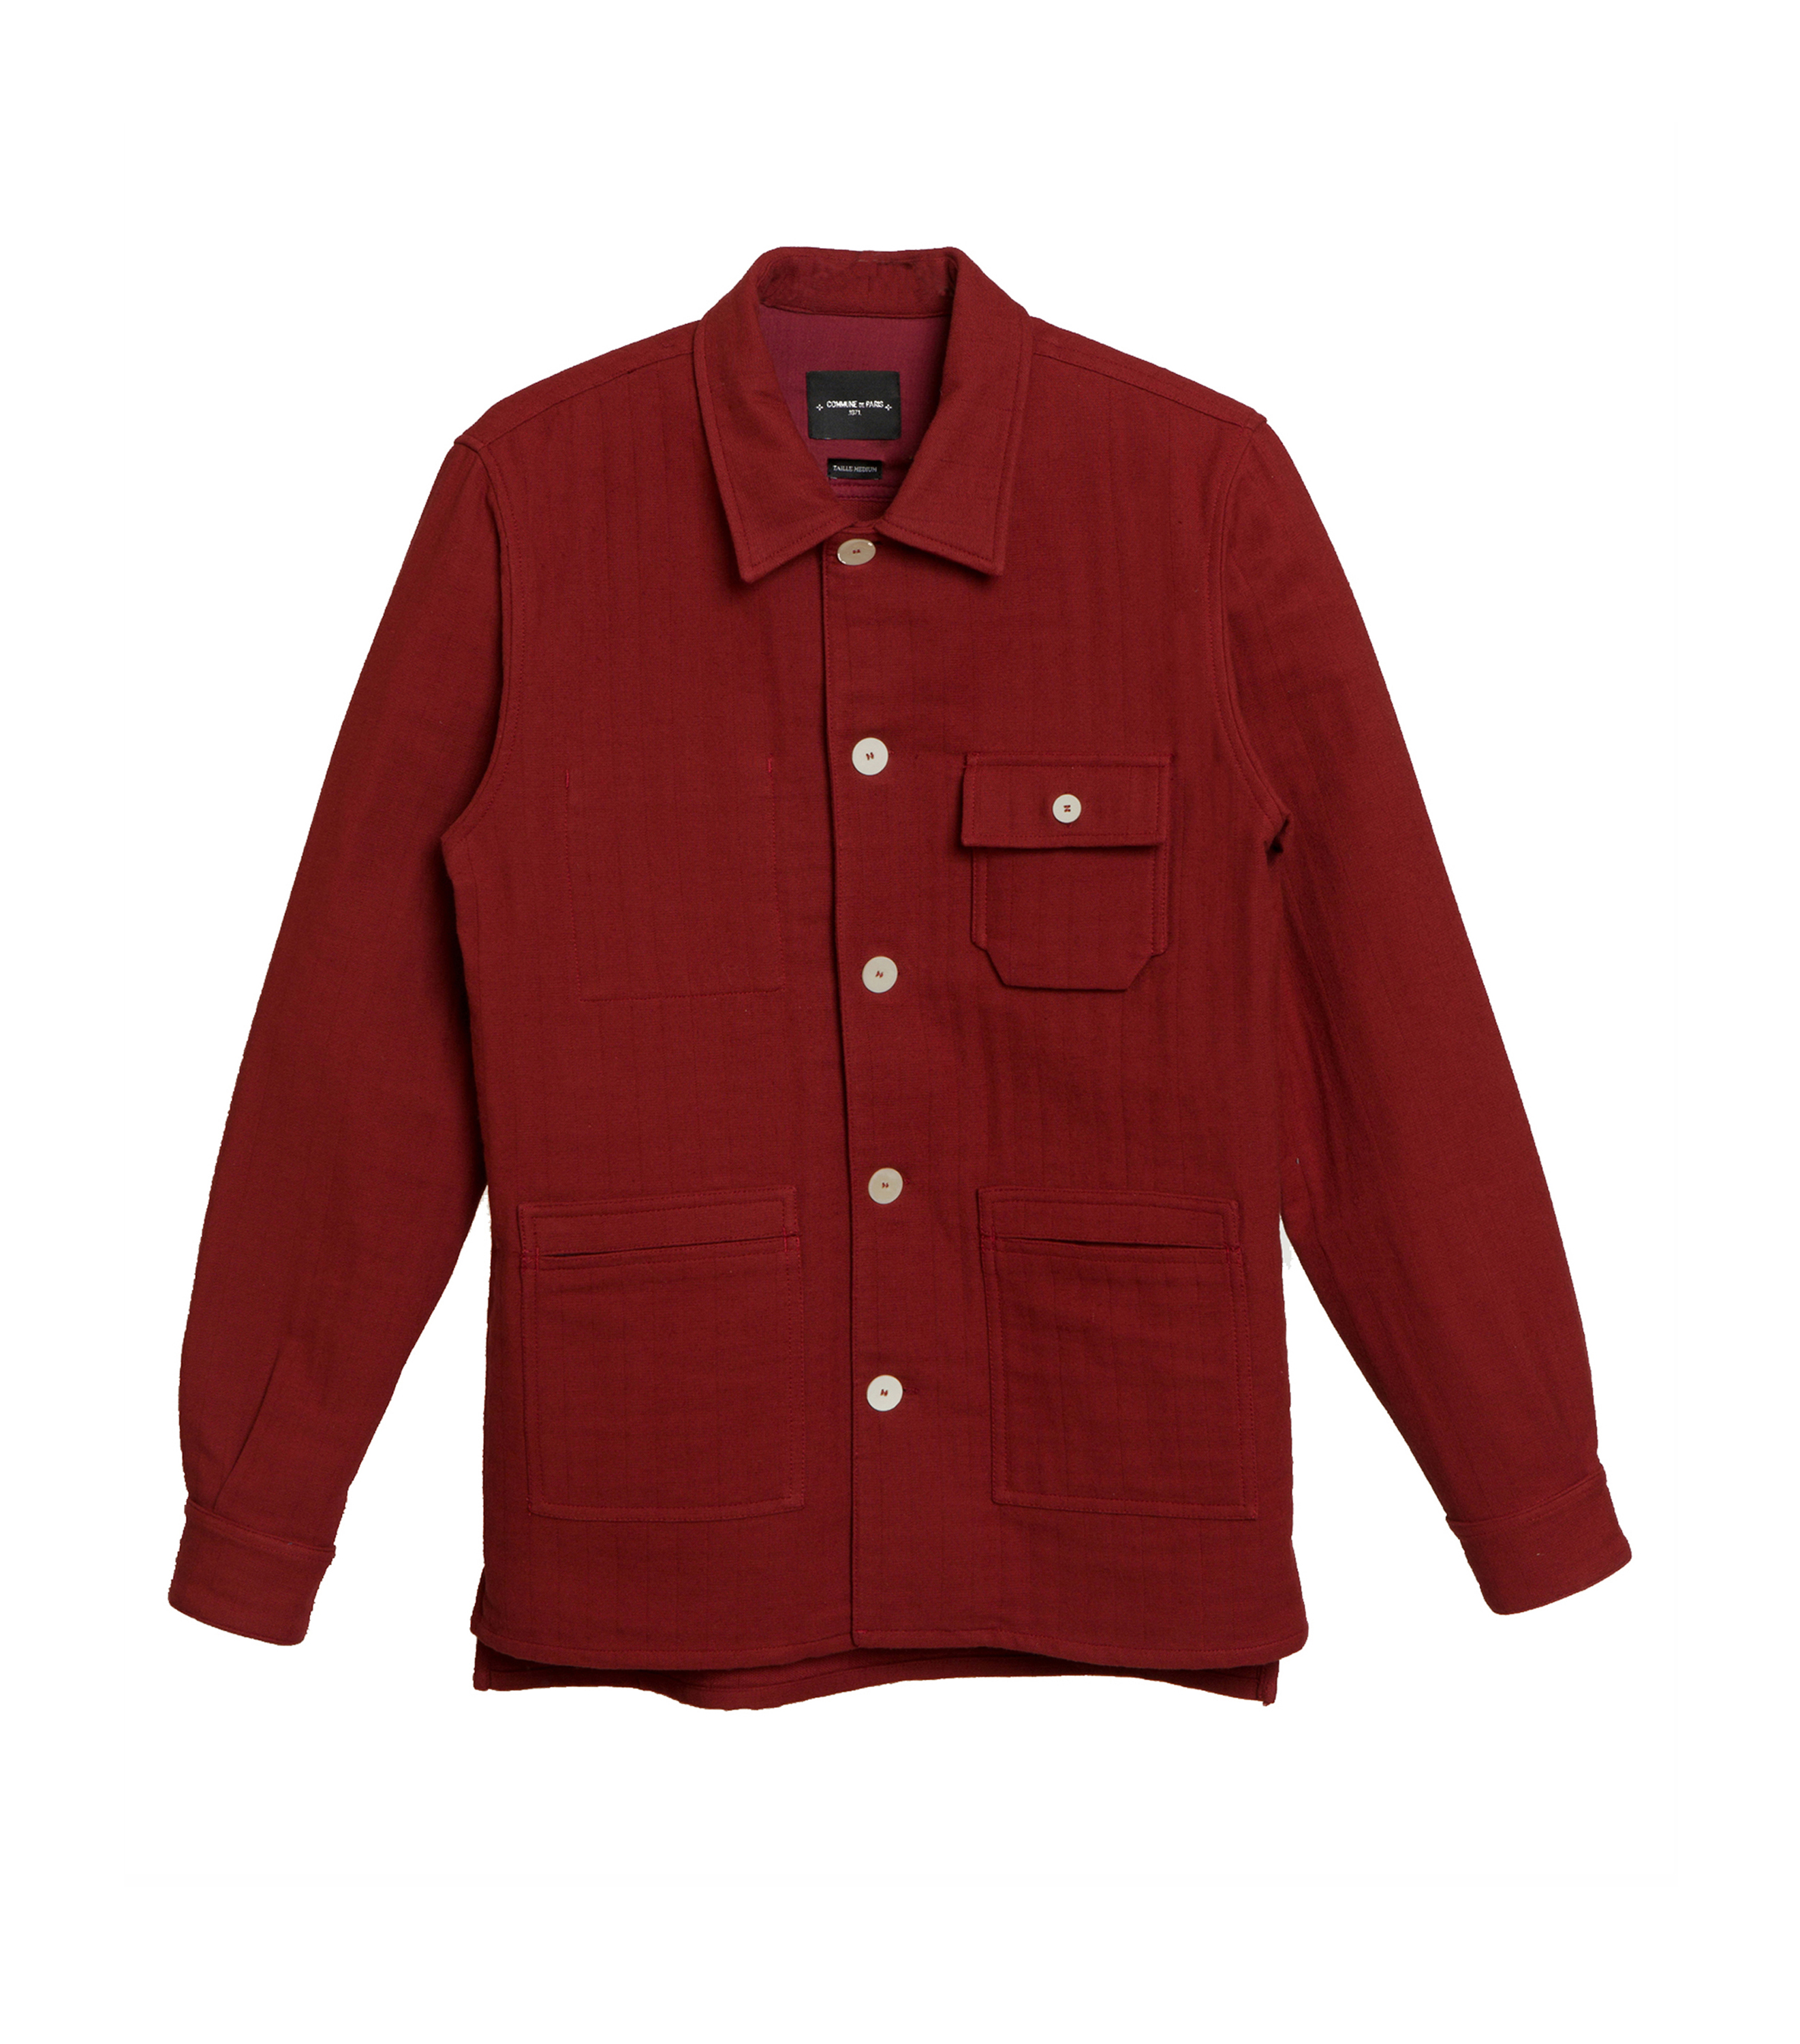 OVERSHIRT THEODORE - Red